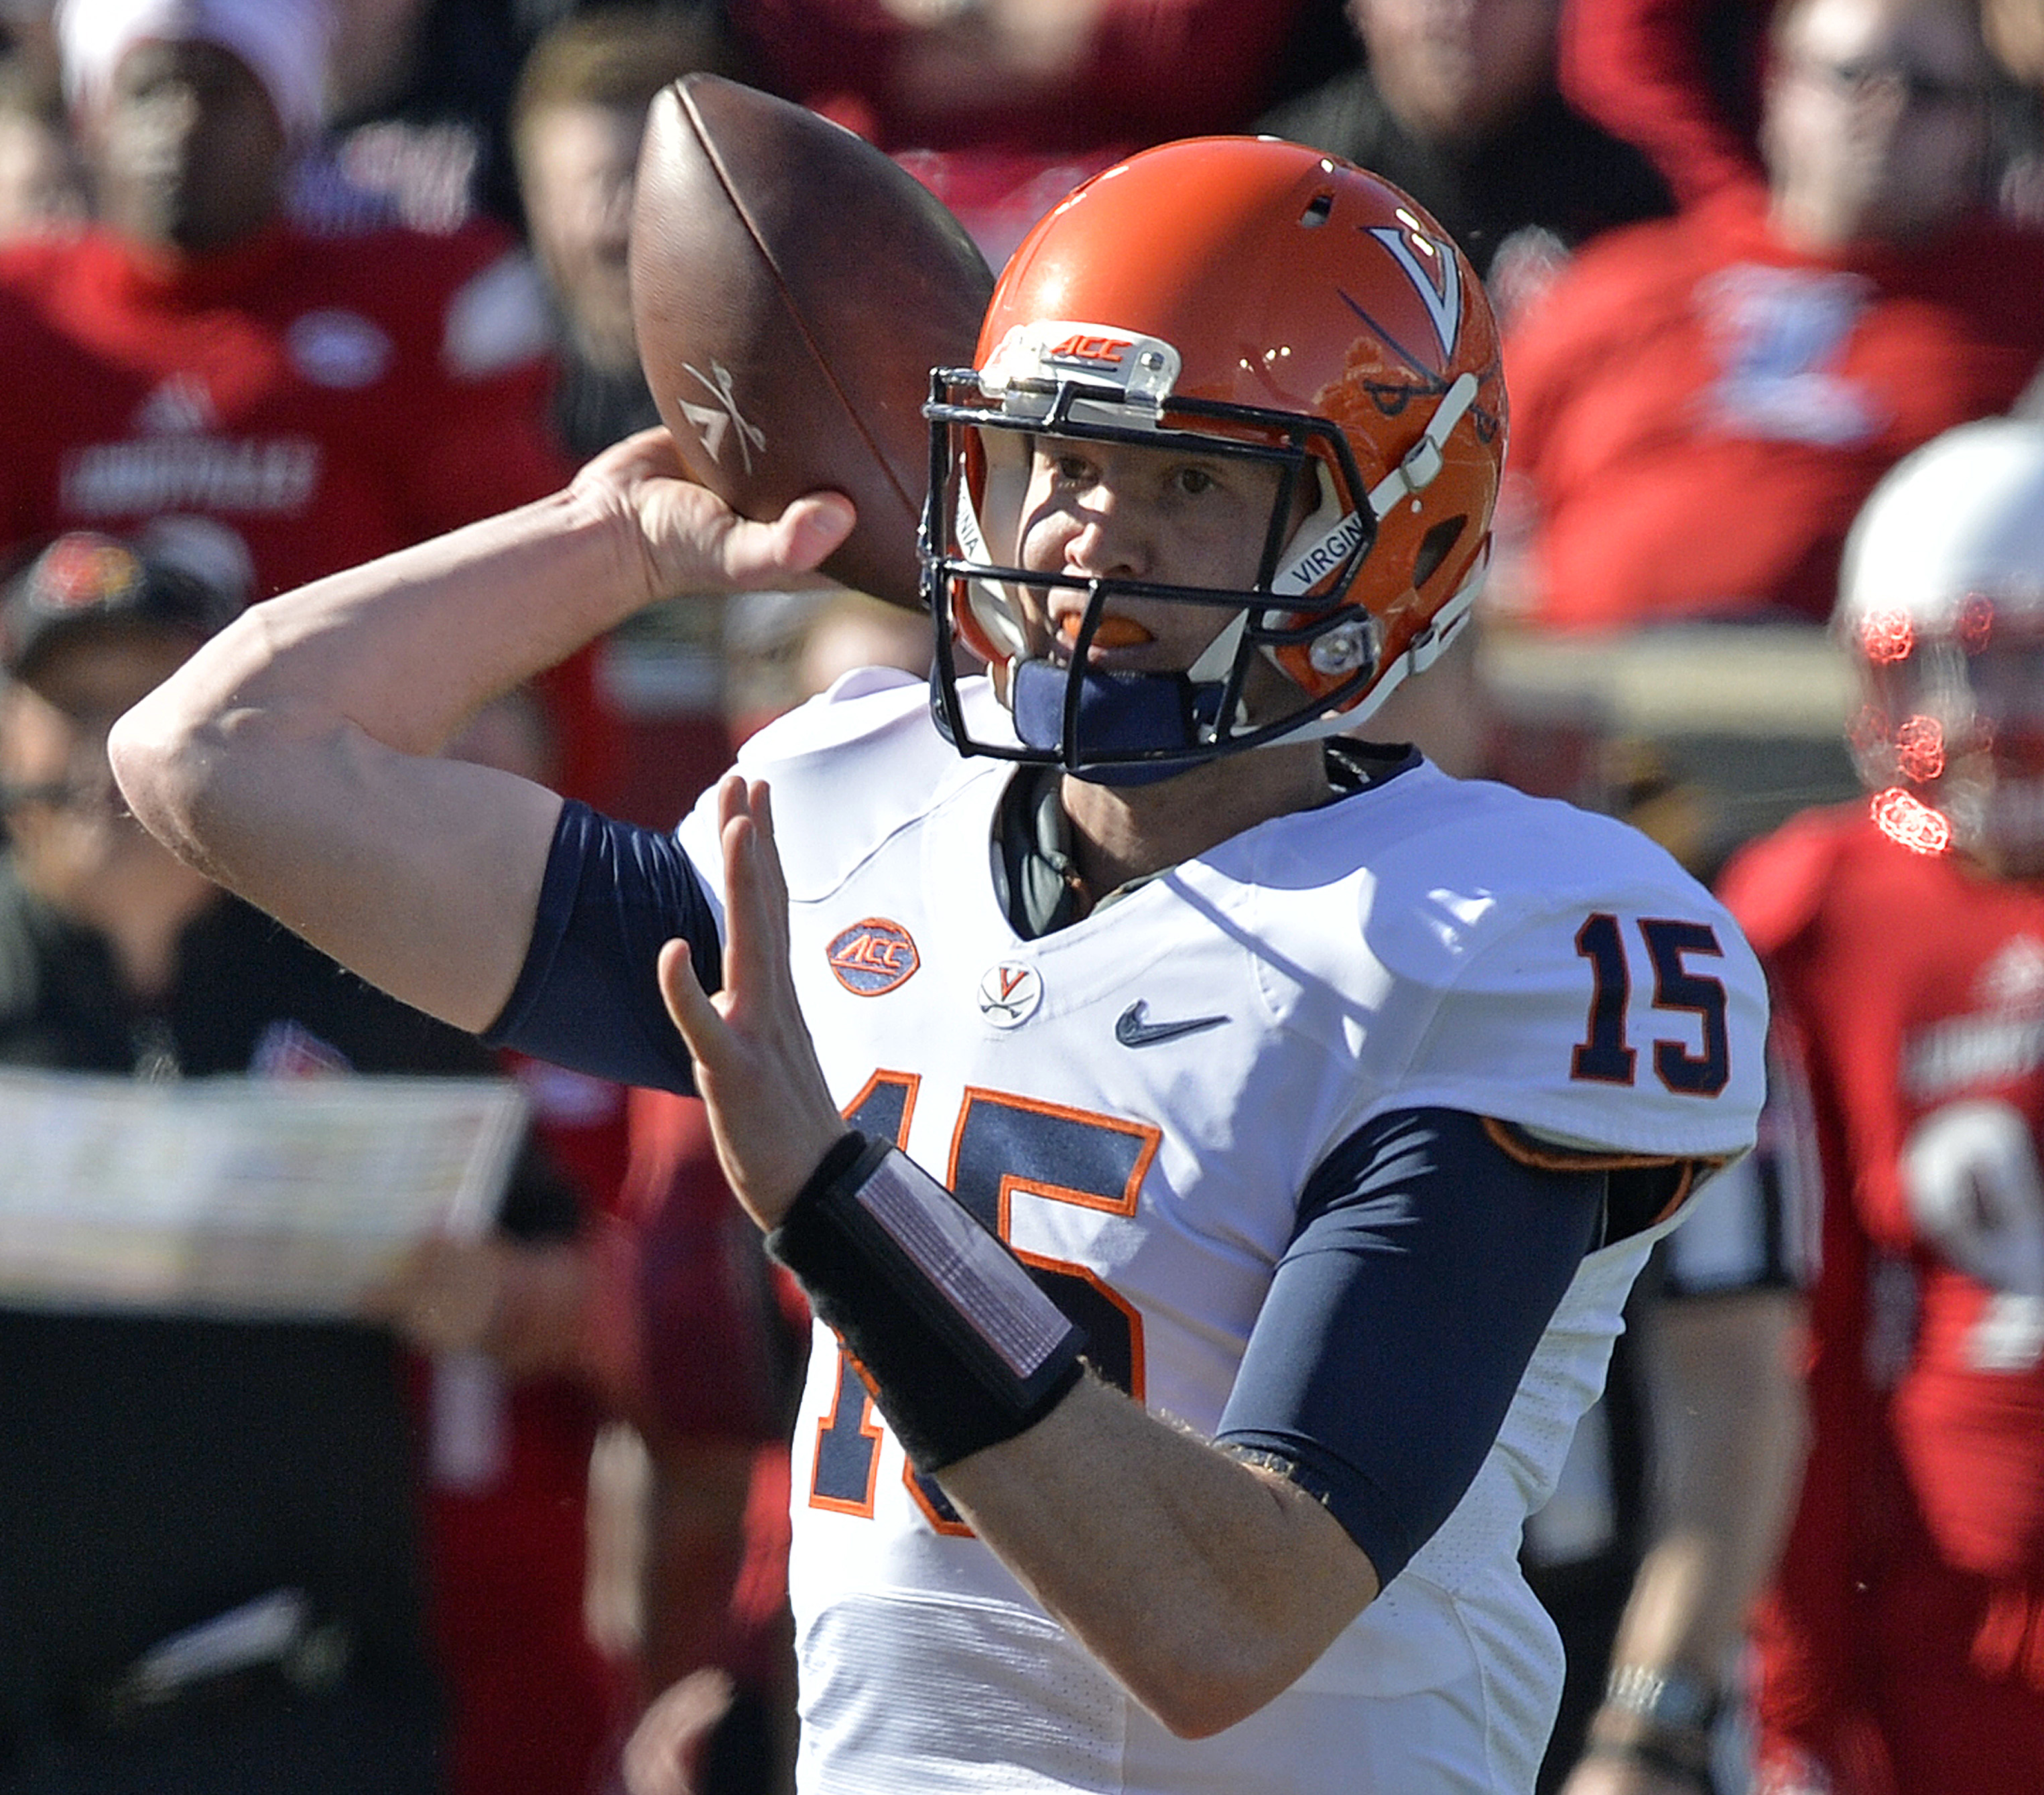 Virginia quarterback Matt Johns (15) throws to a receiver during the first half of an NCAA college football game against Louisville, Saturday, Nov. 14, 2015, in Louisville, Ky. Louisville won 38-31. (AP Photo/Timothy D. Easley)